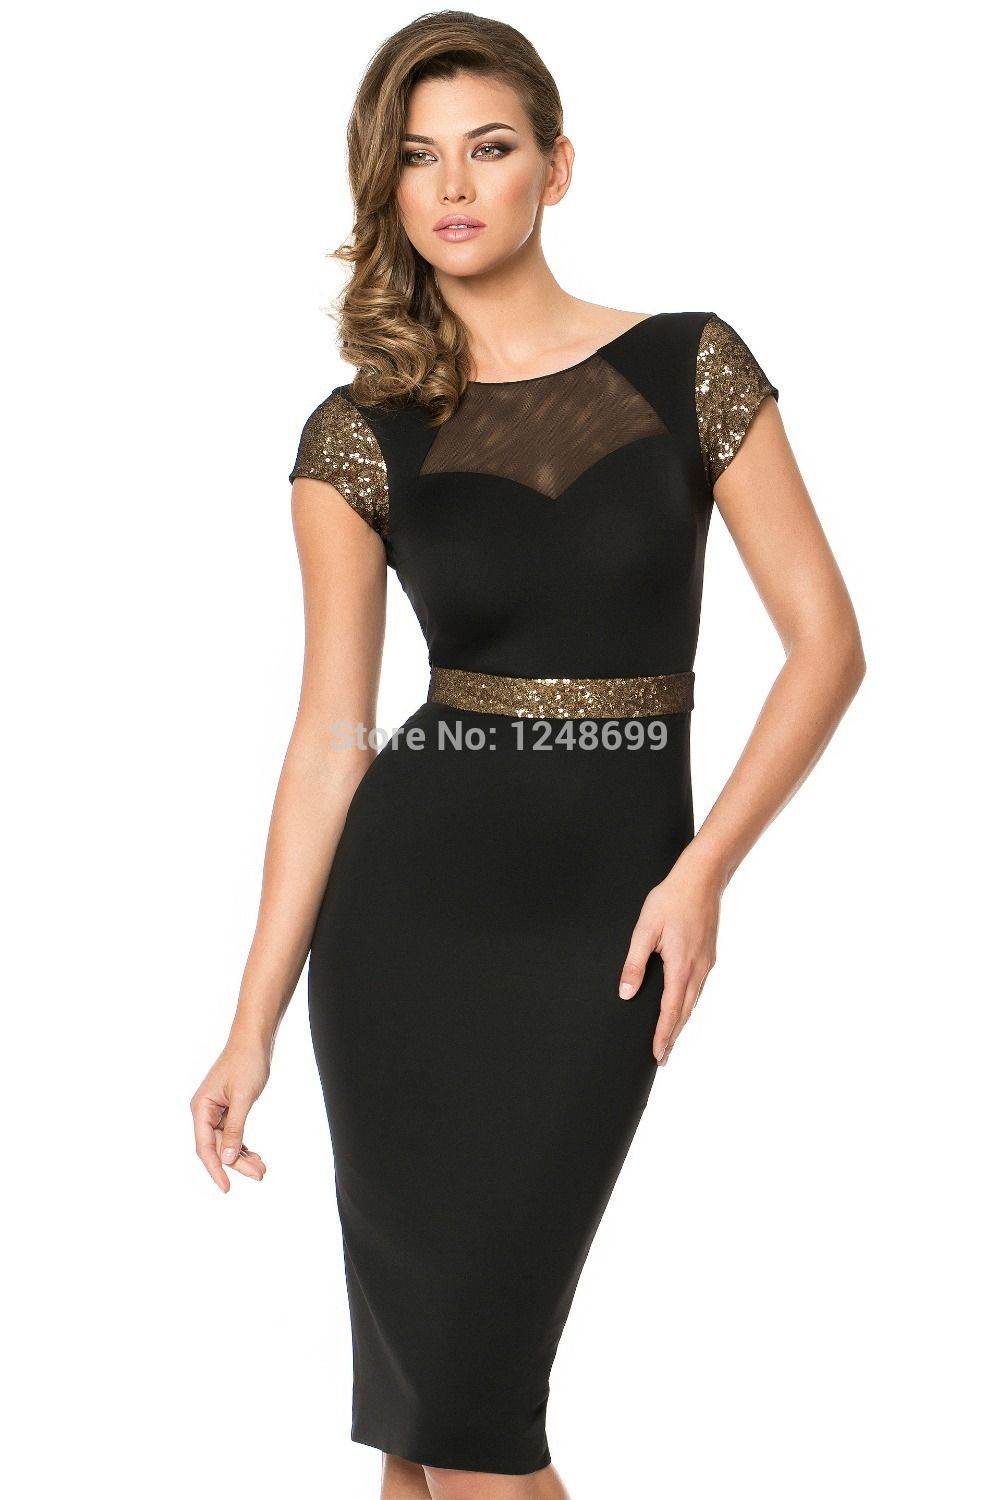 Lace dresses black cocktail dresses with short sleeves promgirl